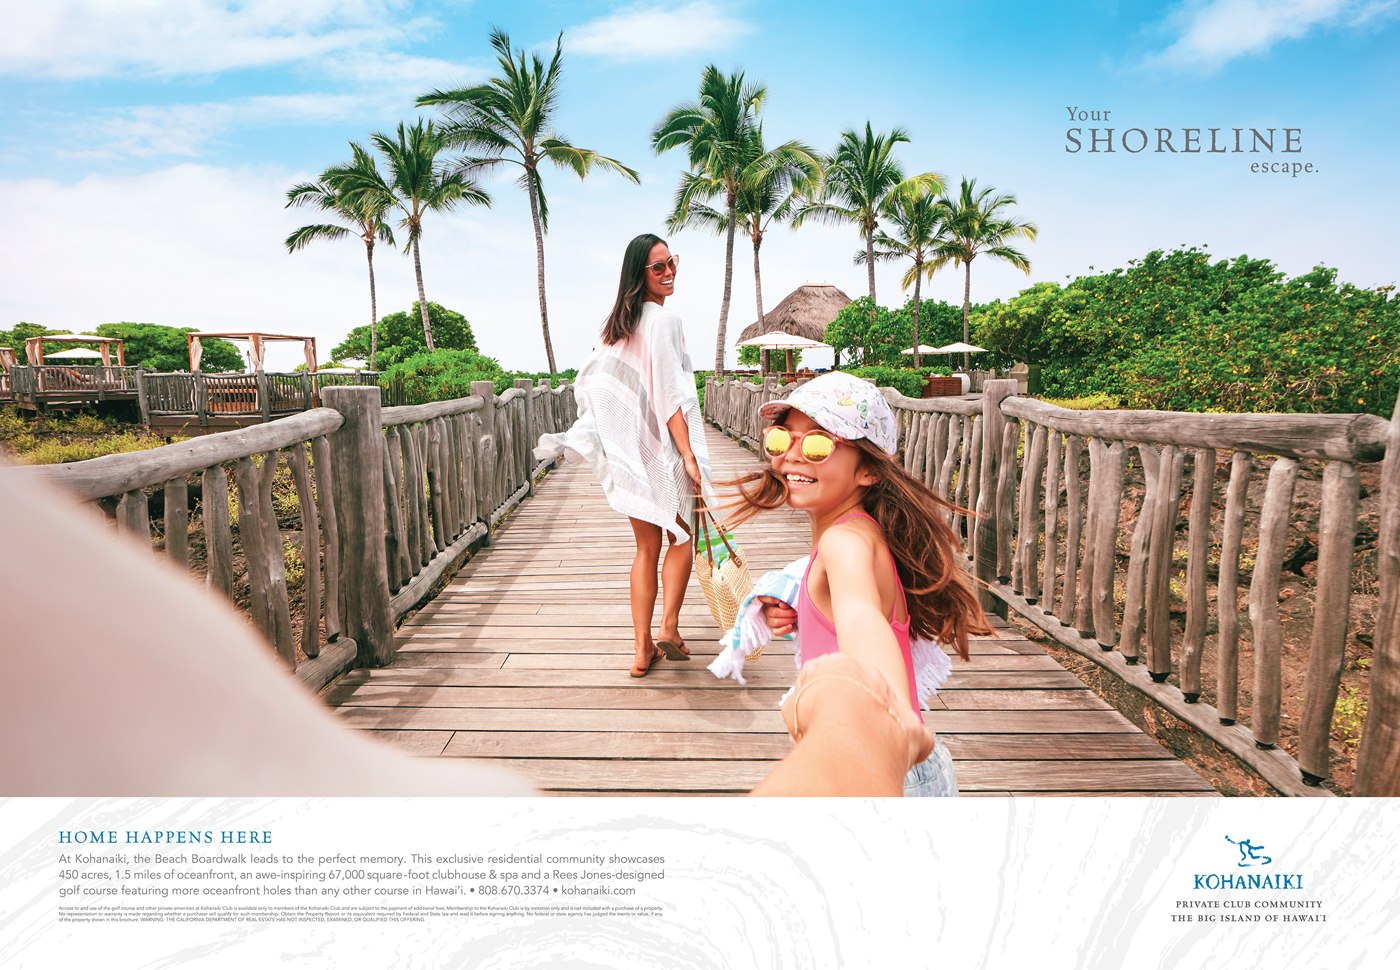 KOHA_00154_Boardwalk_CM_AD_Summer.indd